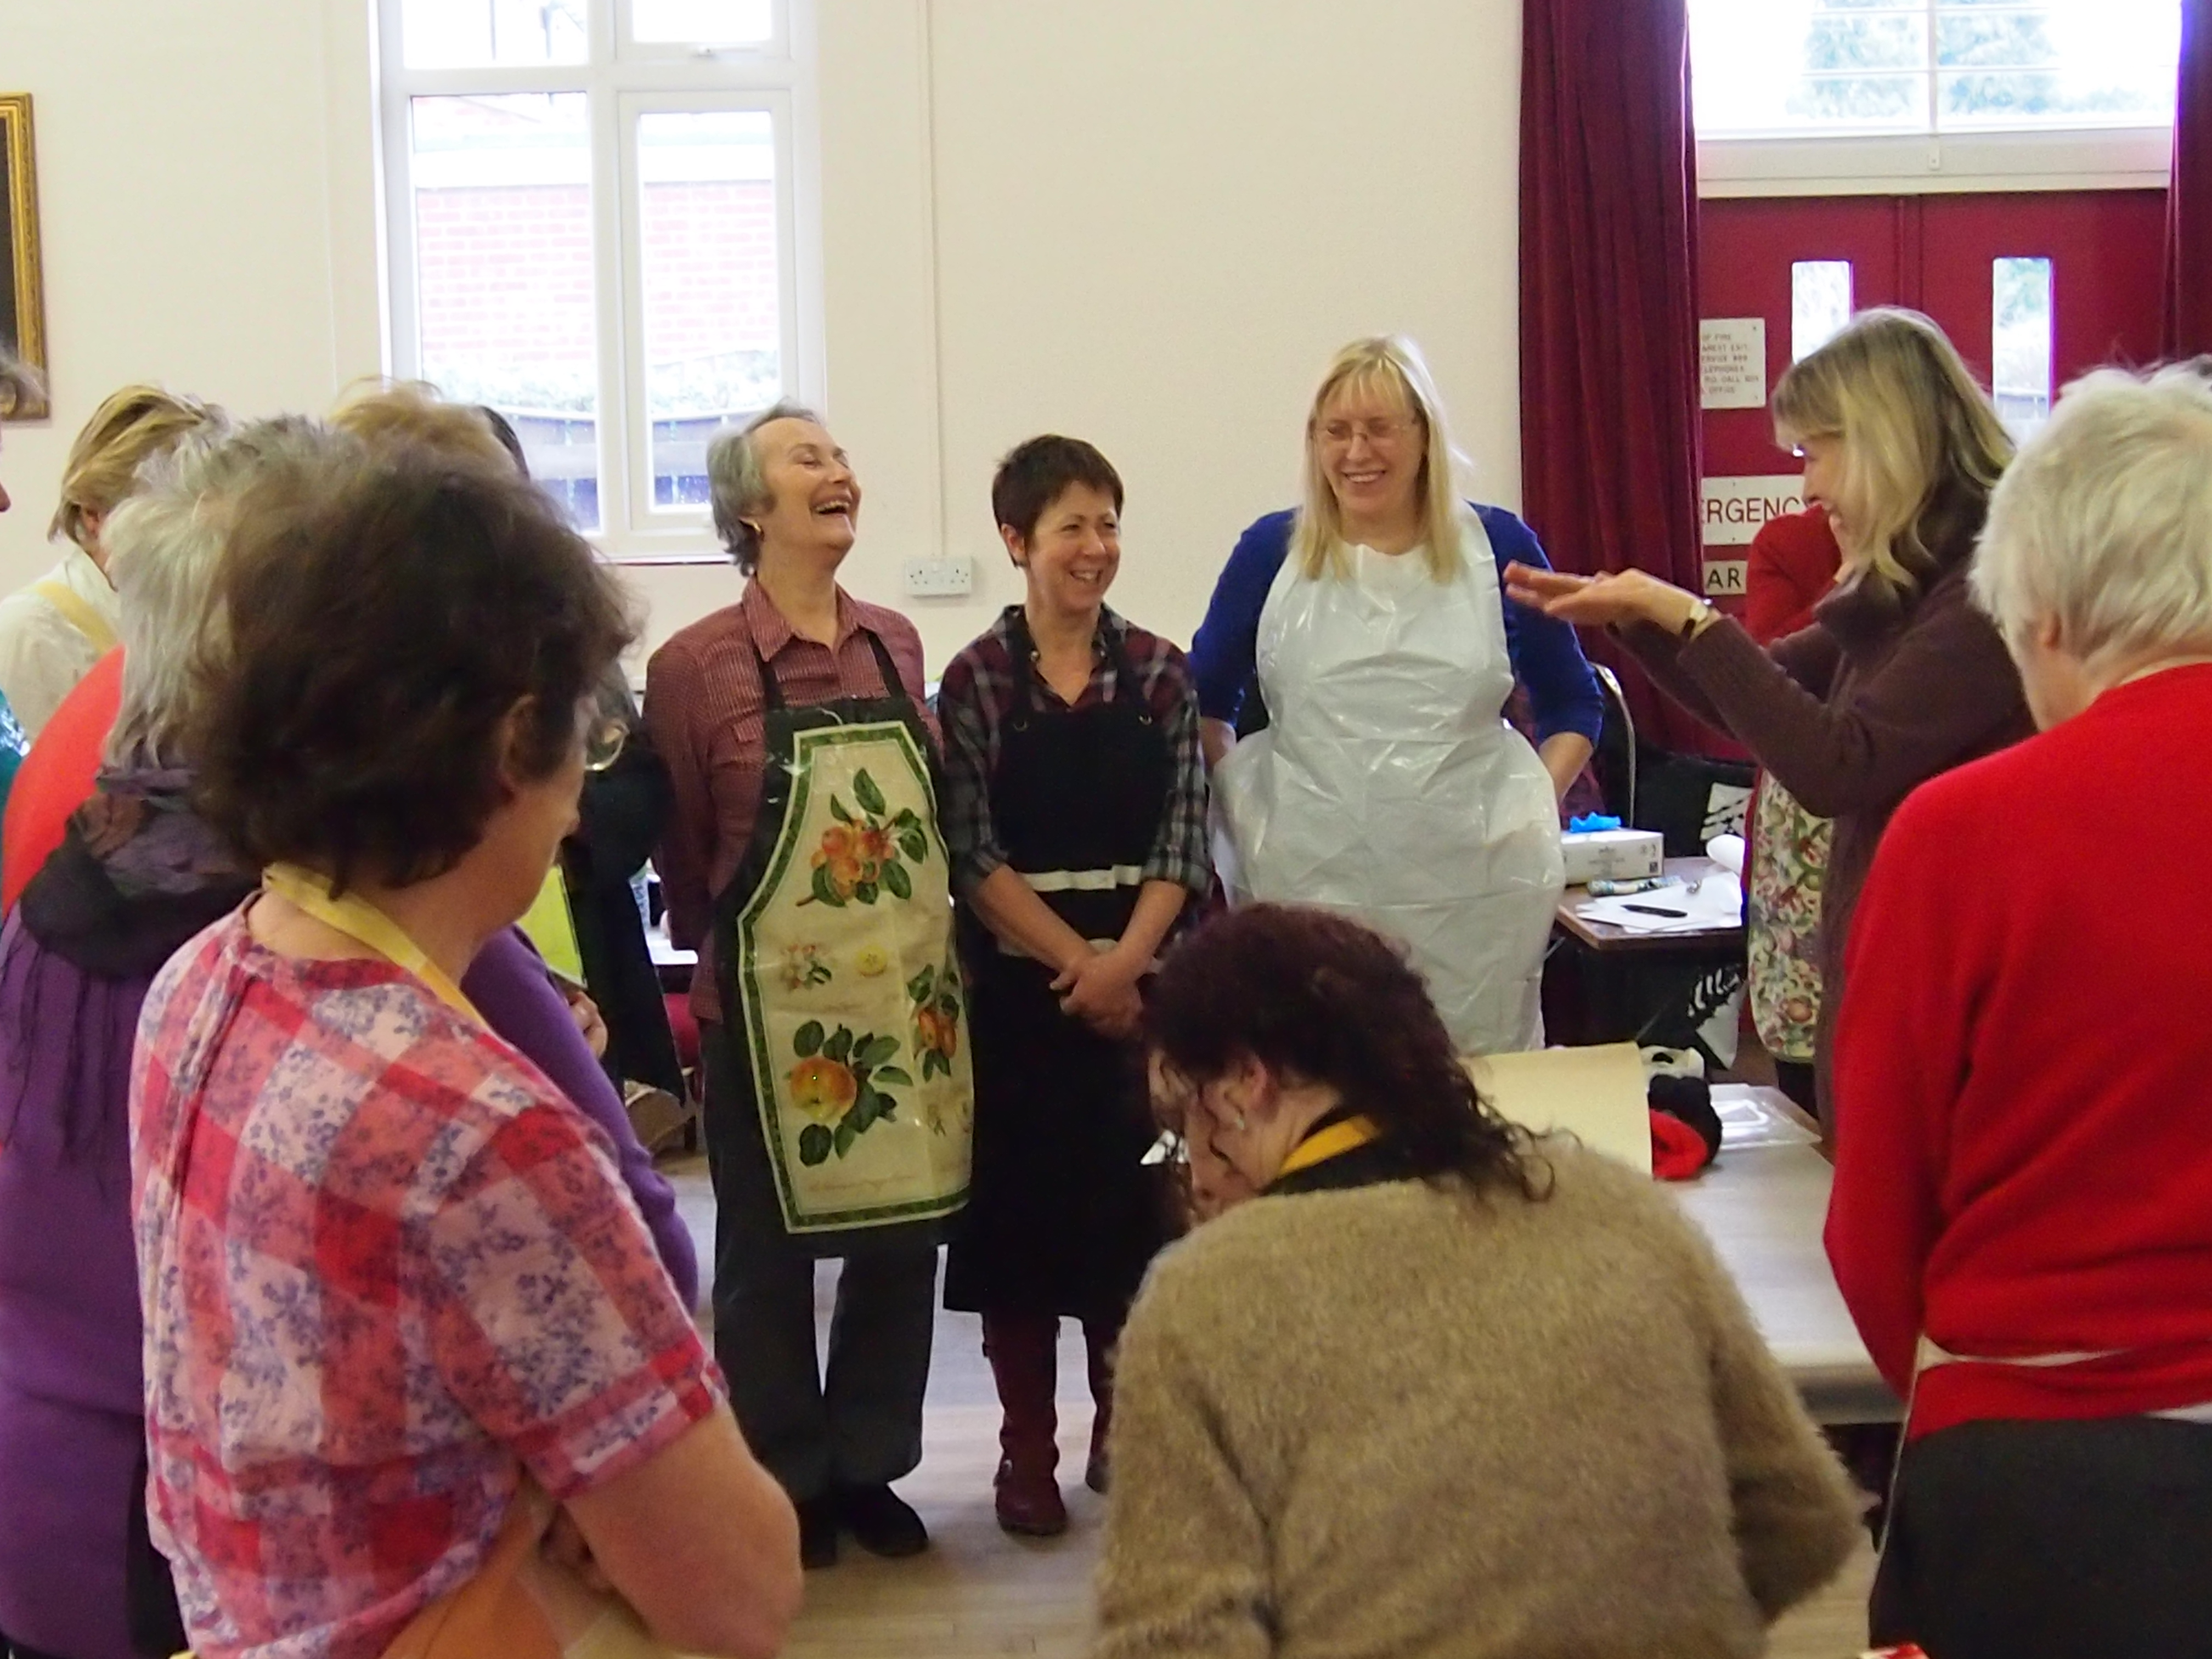 Worcestershire artist Raya Brown teaching adult students